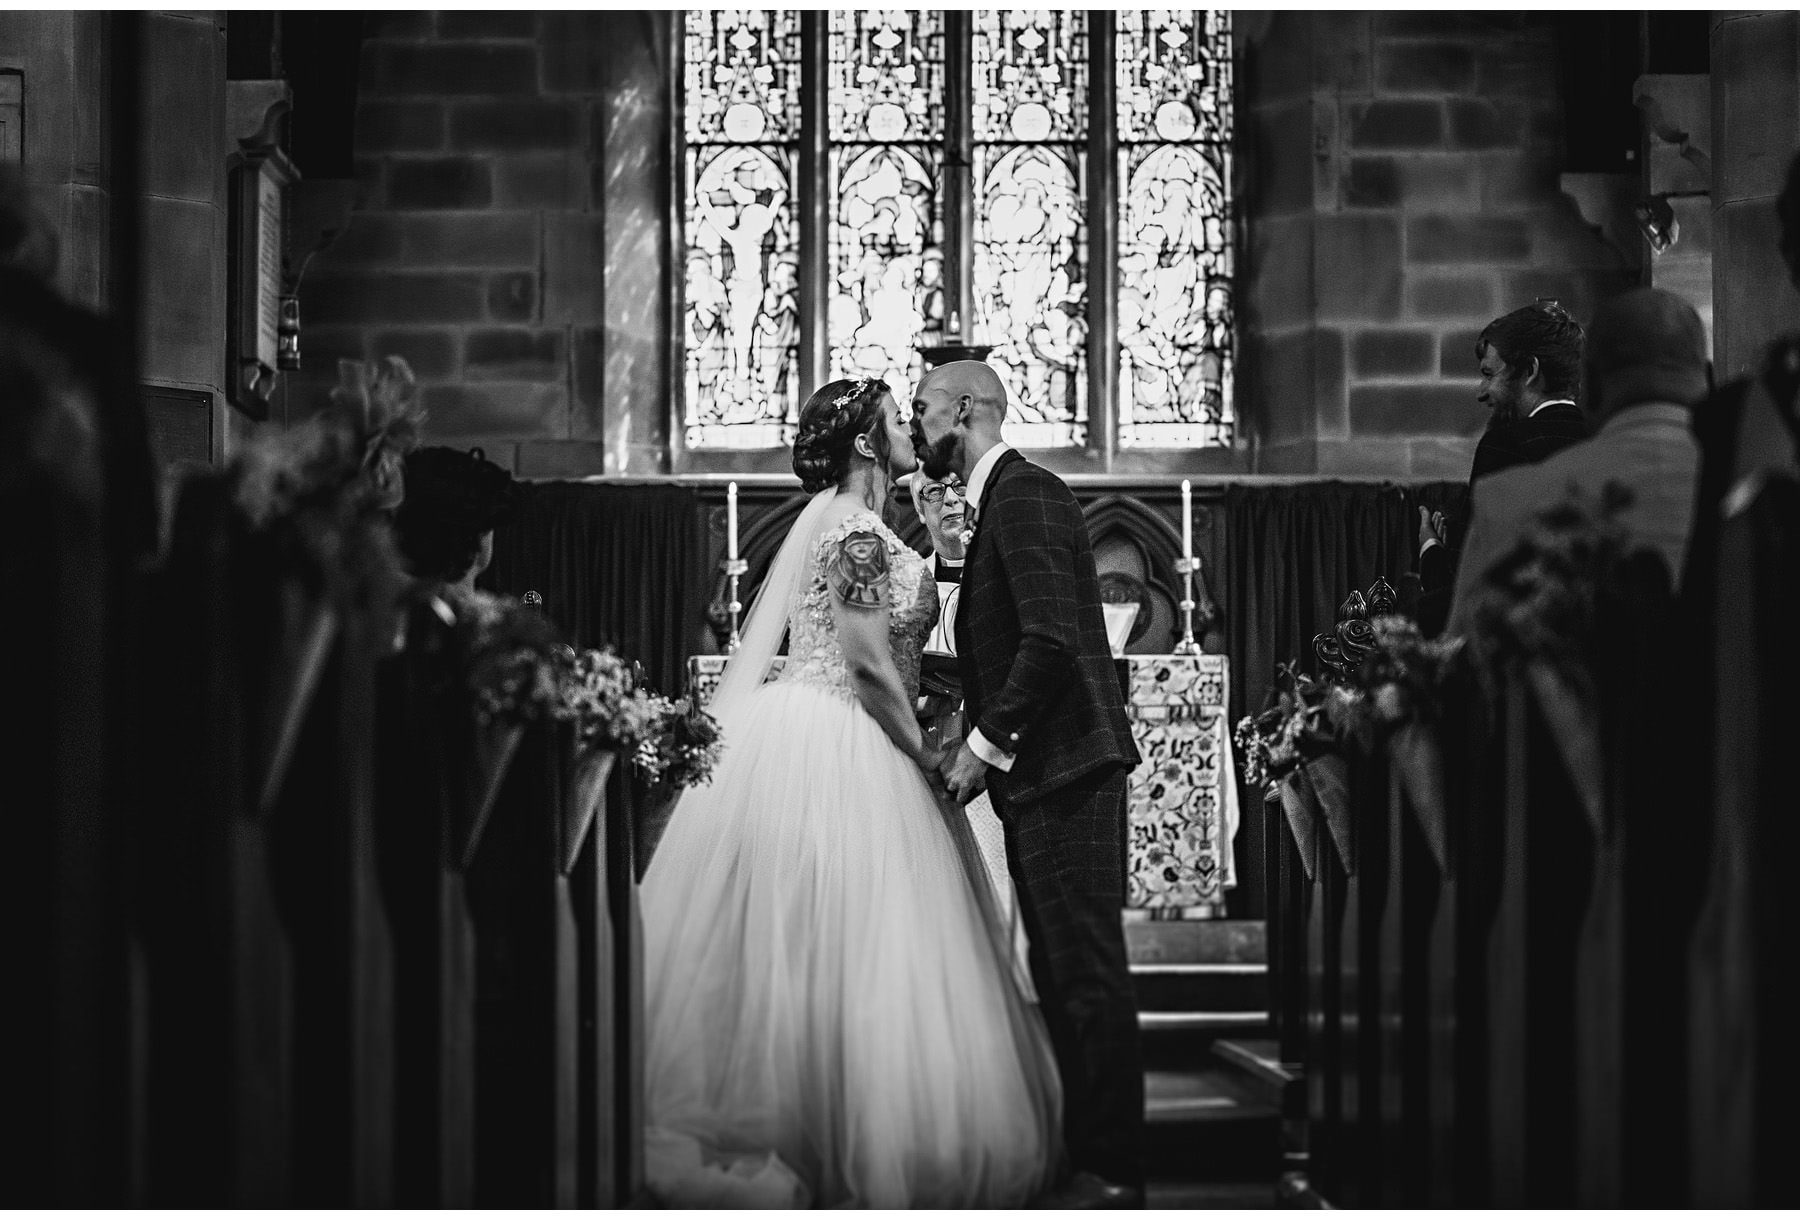 the first kiss as husband and wife in church